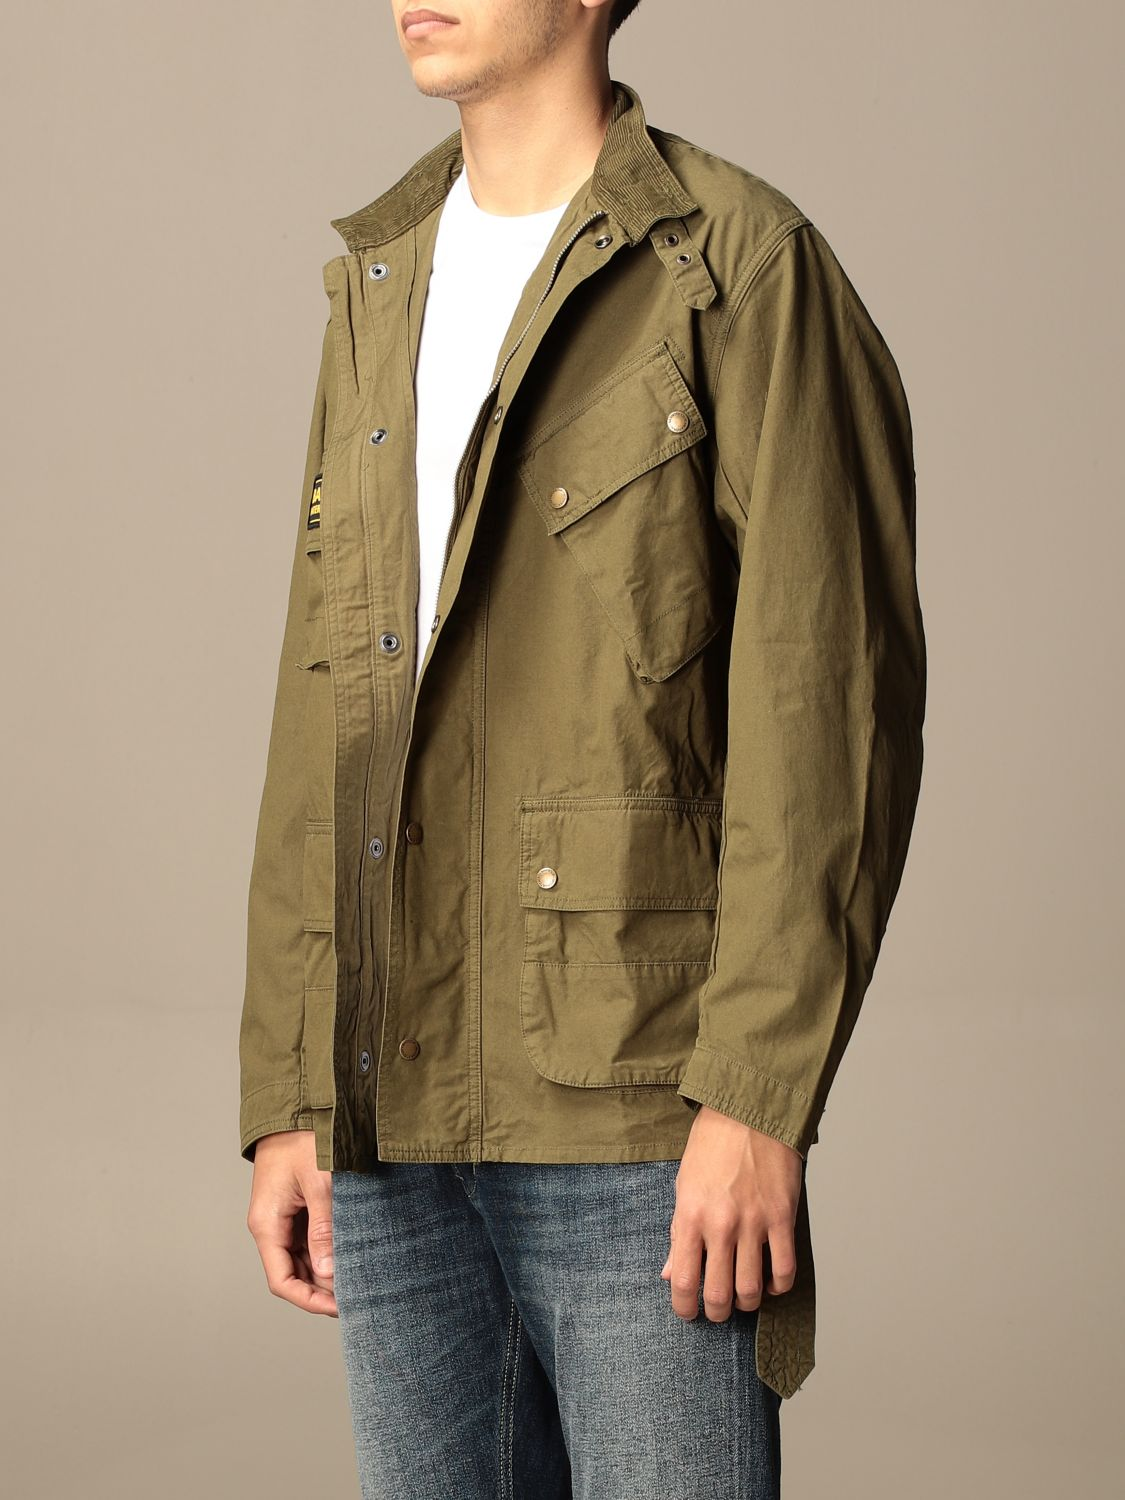 Giacca Barbour: Giacca Barbour in canvas militare 3